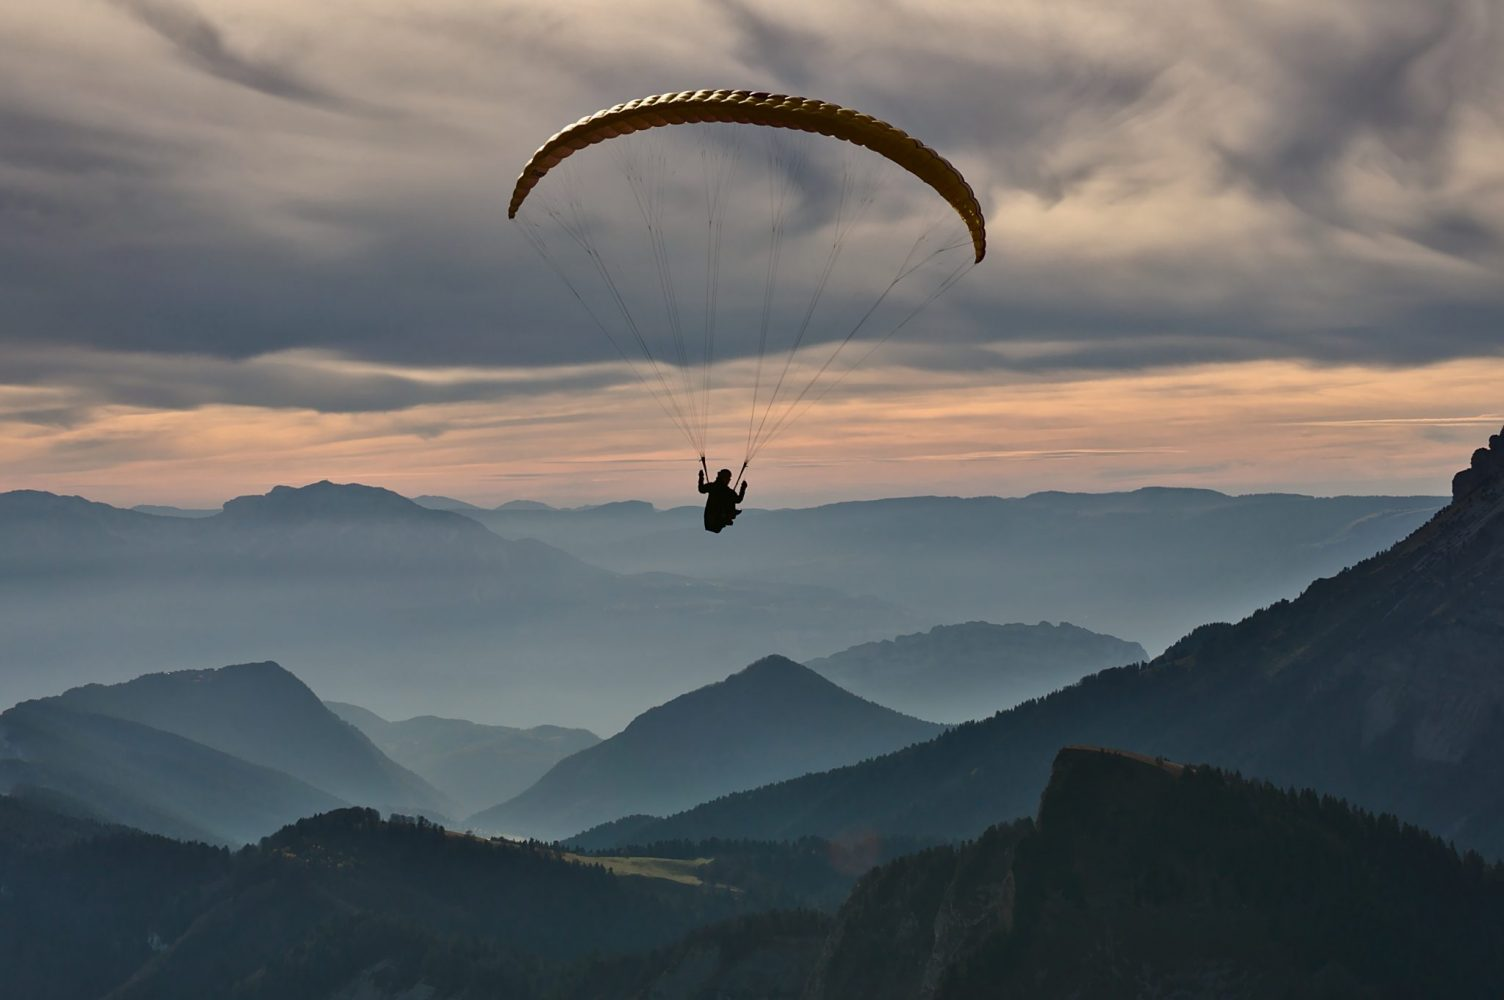 Hang glider https://unsplash.com/photos/Z2yEVIbH-XU